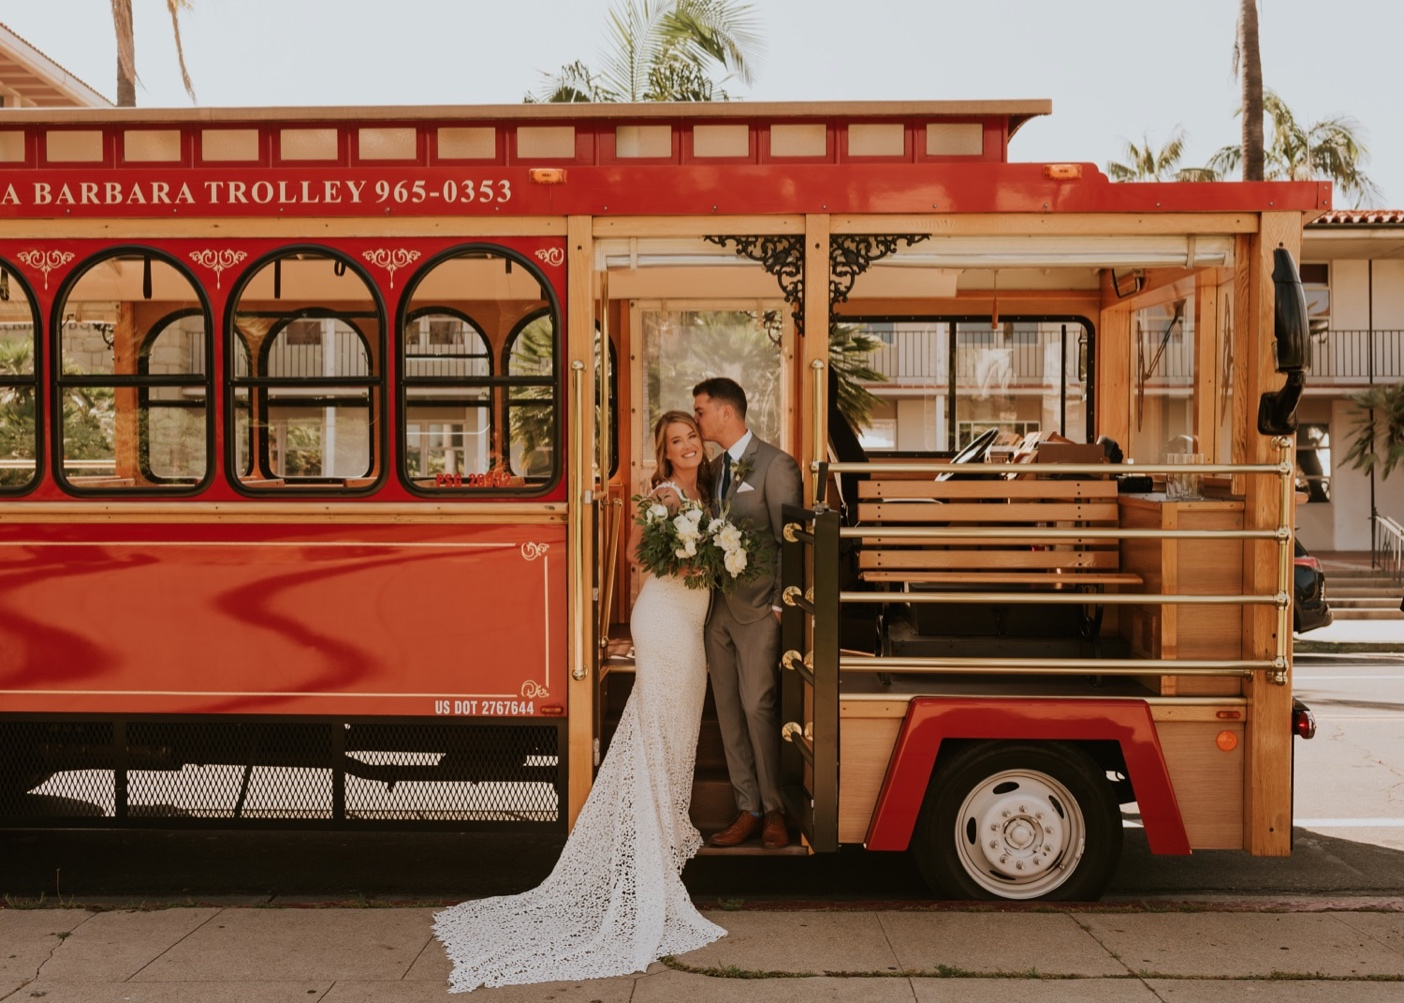 Bride and Groom on Trolley Car. Santa Barbara Courthouse Wedding.